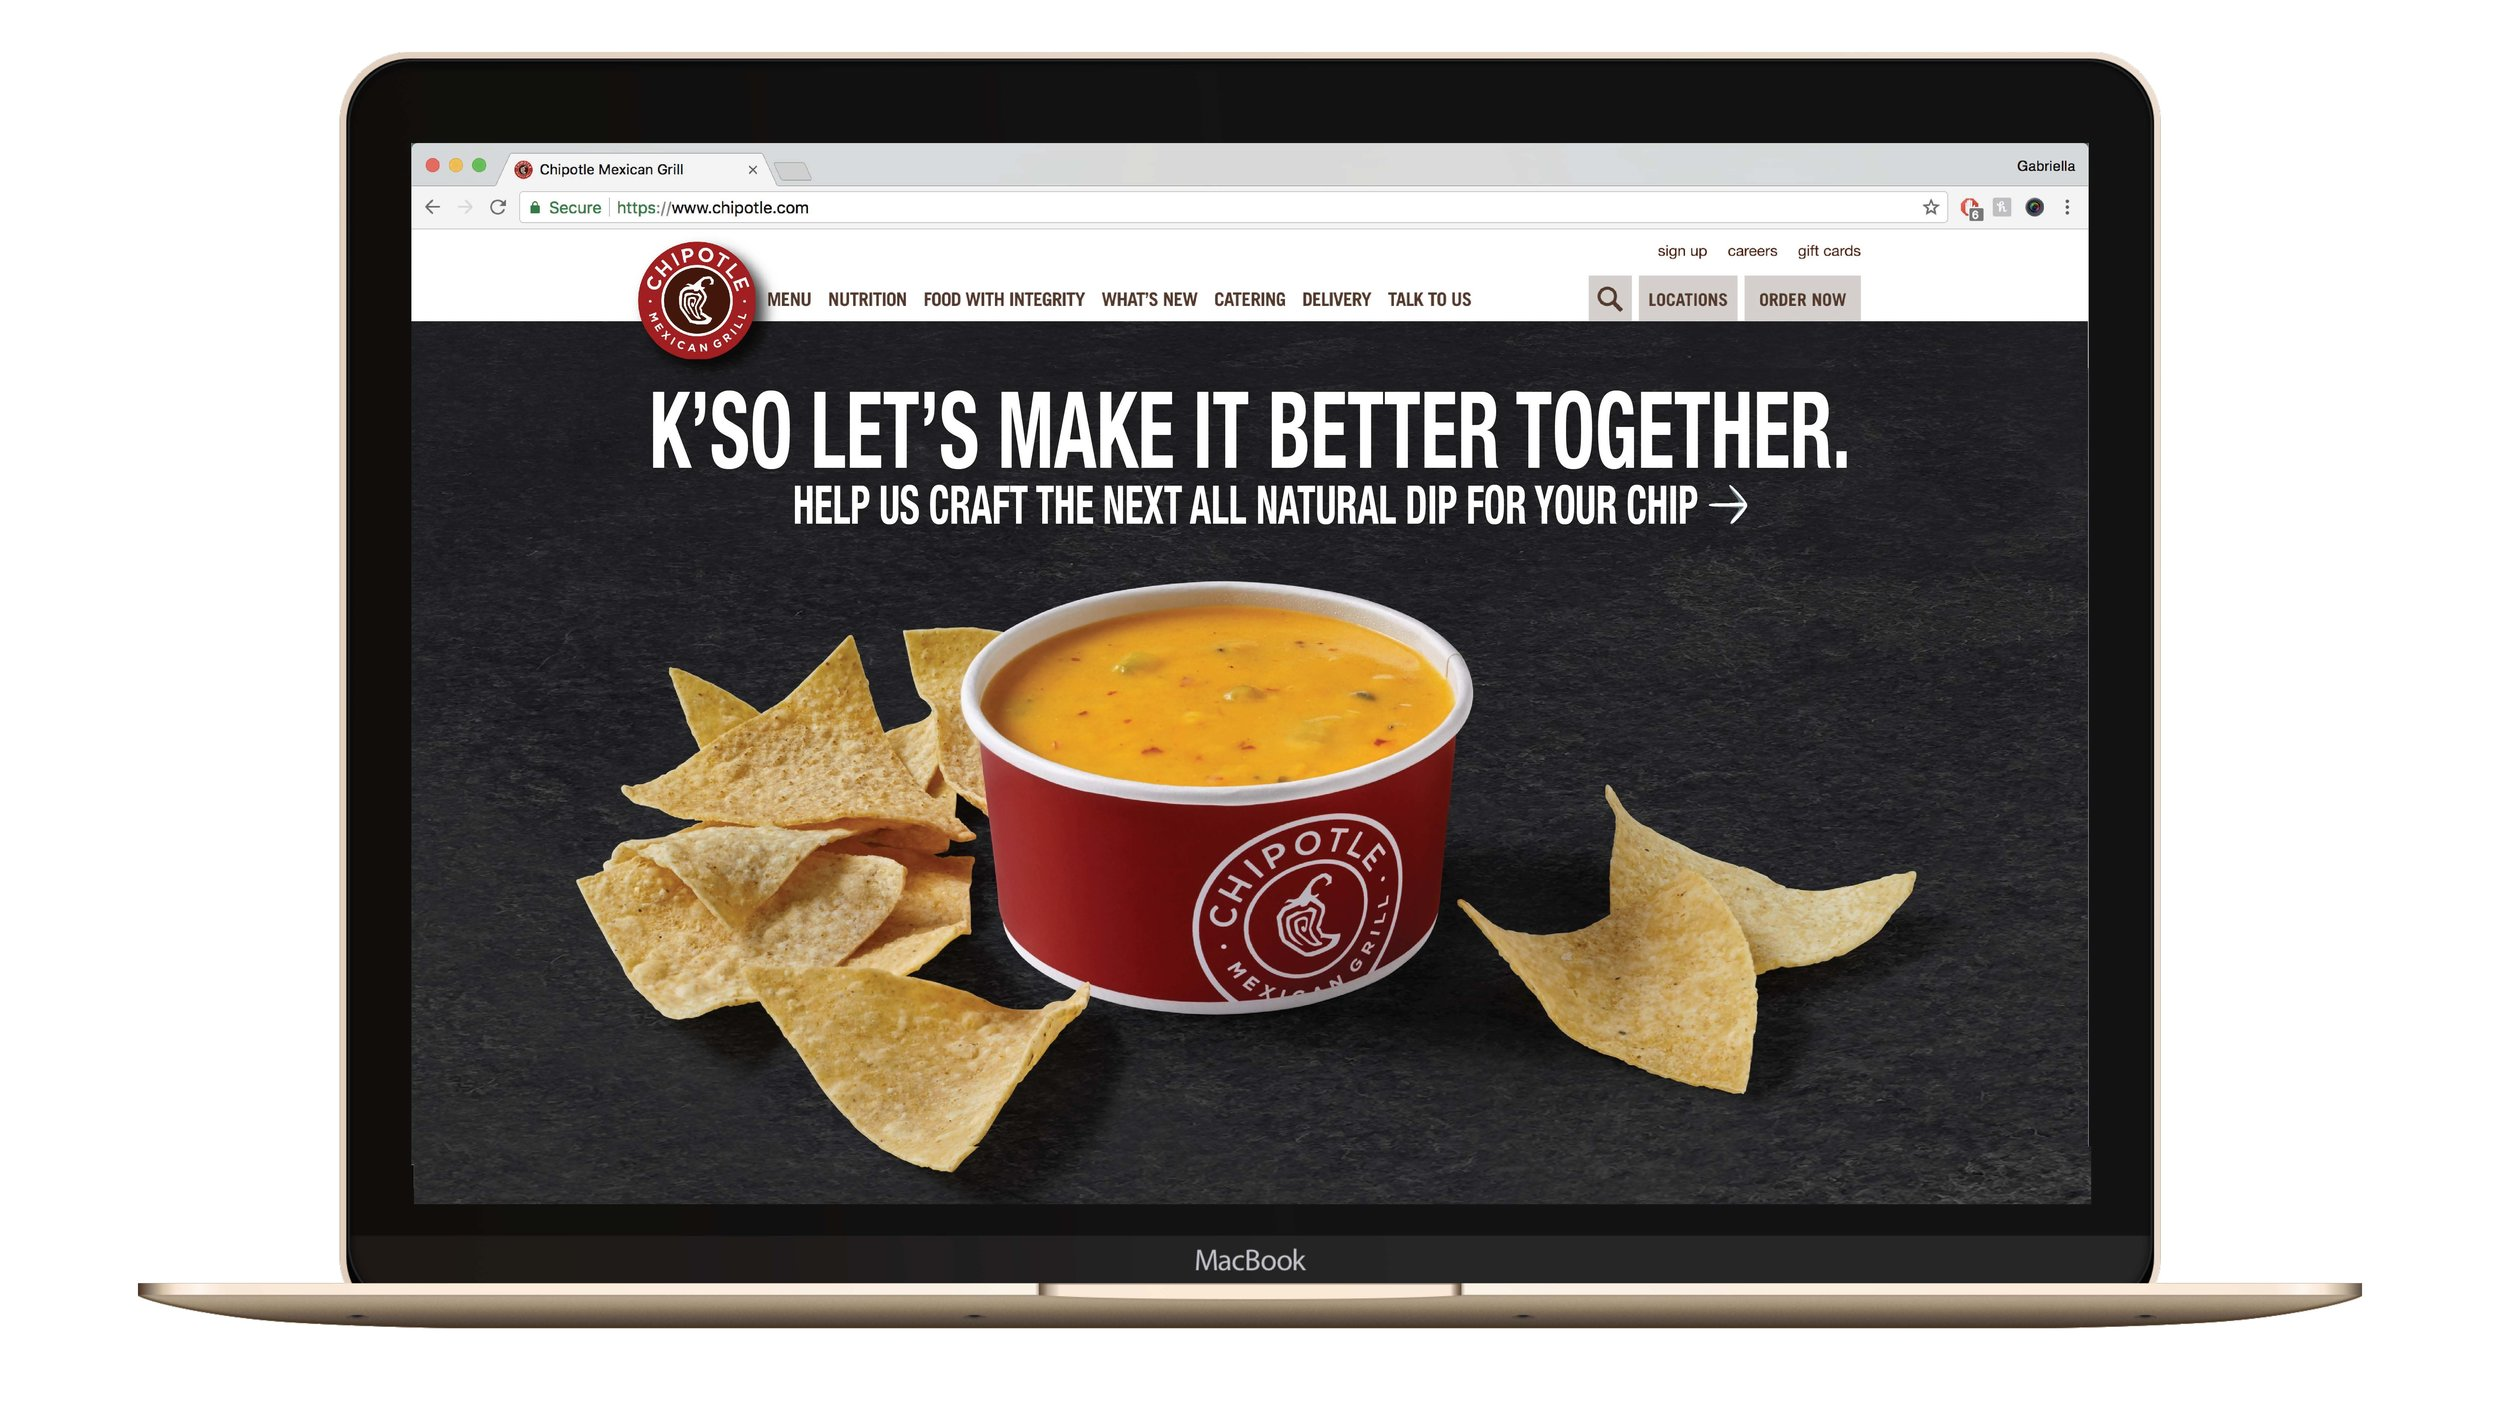 Chipotle Deck 1 Images_Page_39.jpg